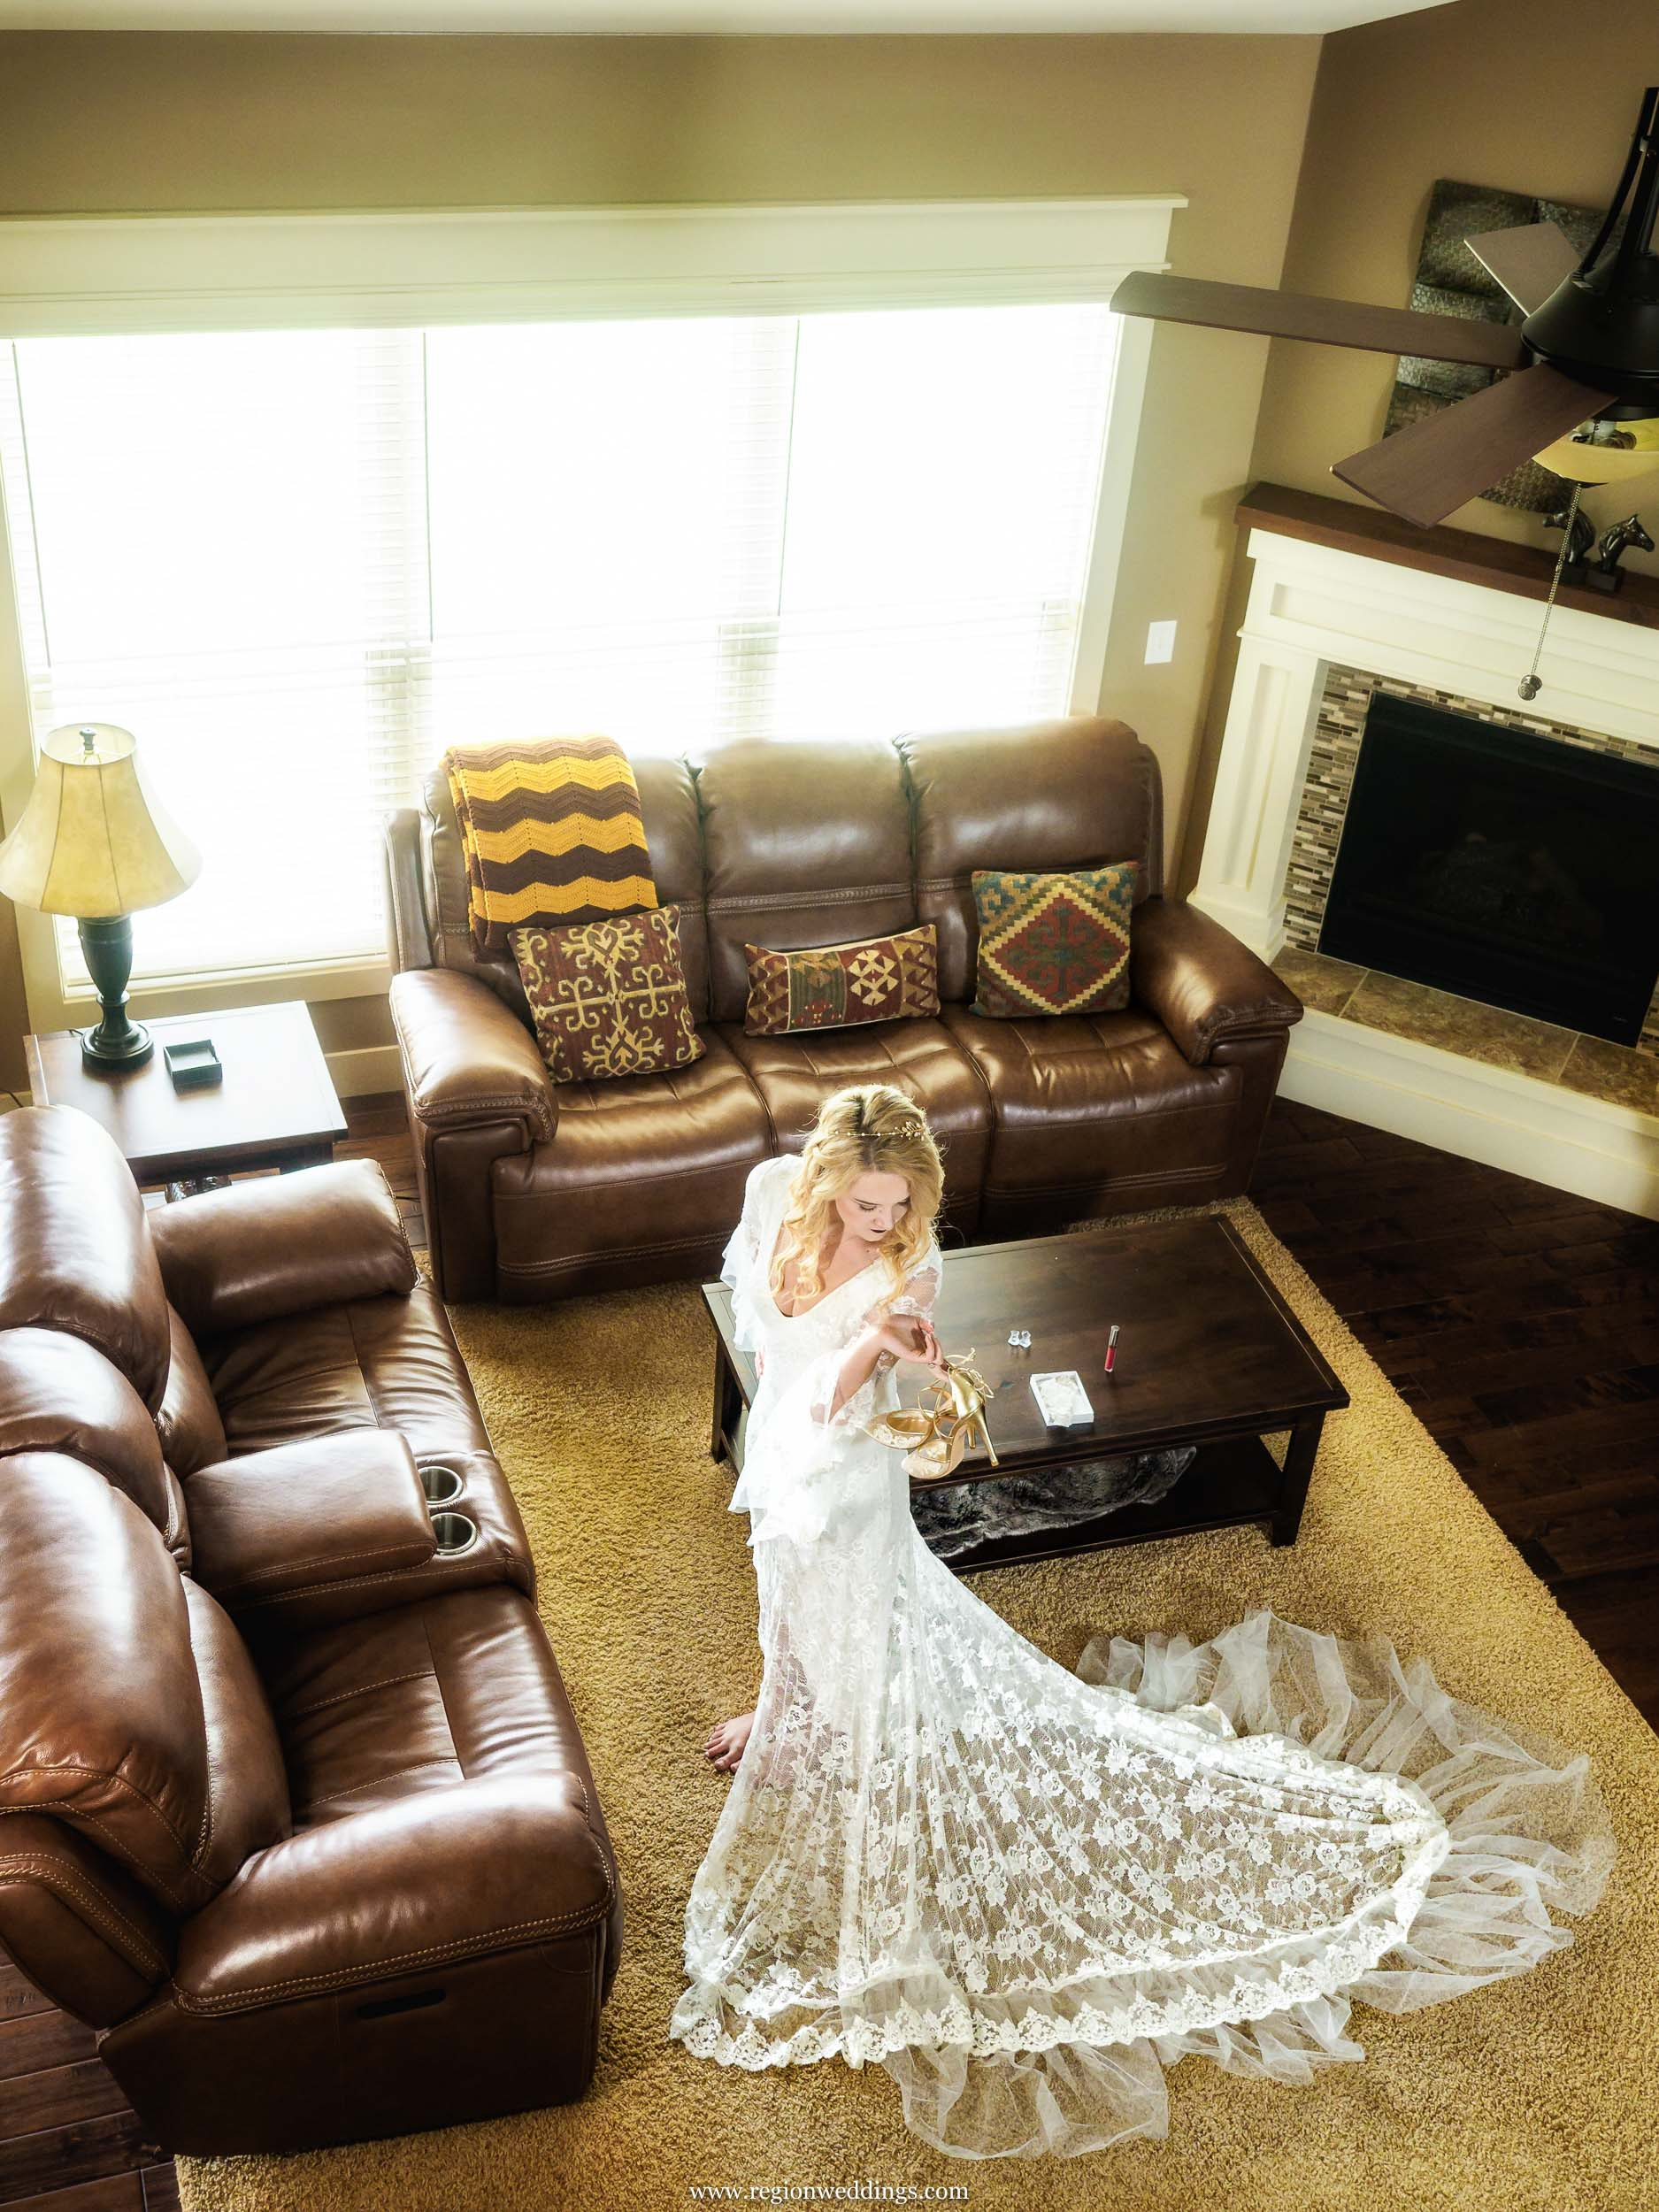 Boho bride from above during bridal prep for her big day.